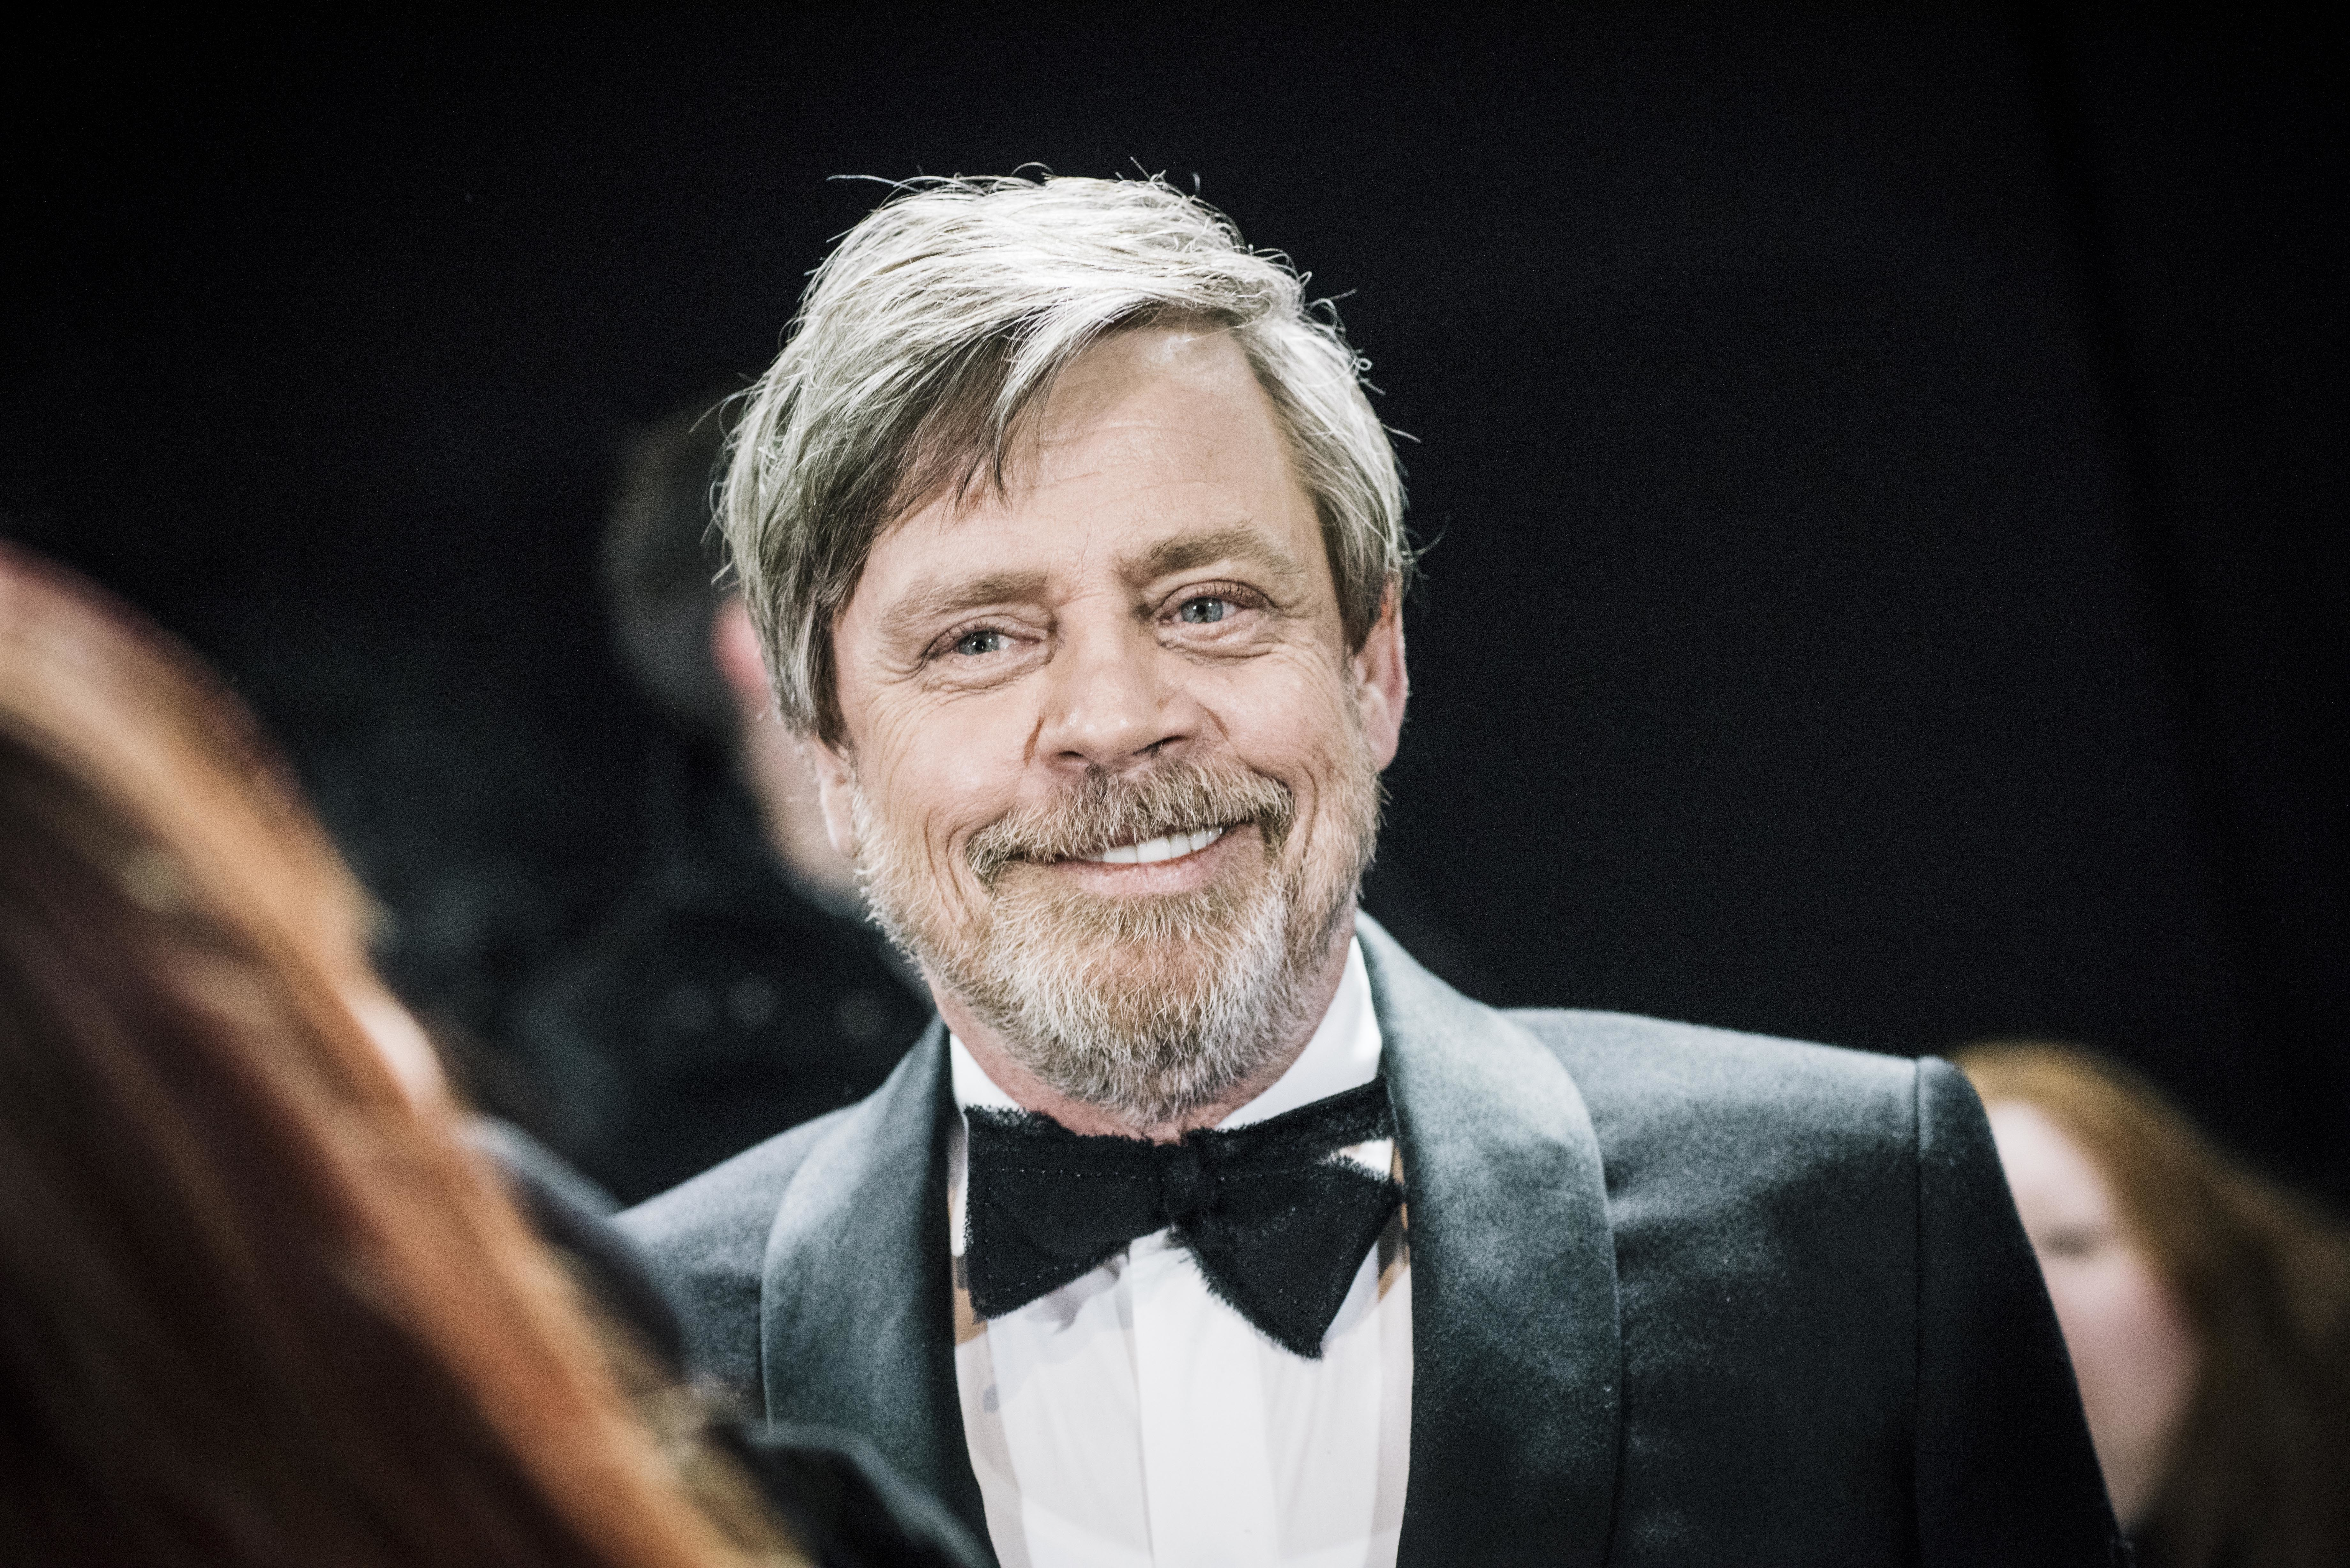 Skywalker, The Joker, Now Chucky: Mark Hamill Takes On Another Iconic Character